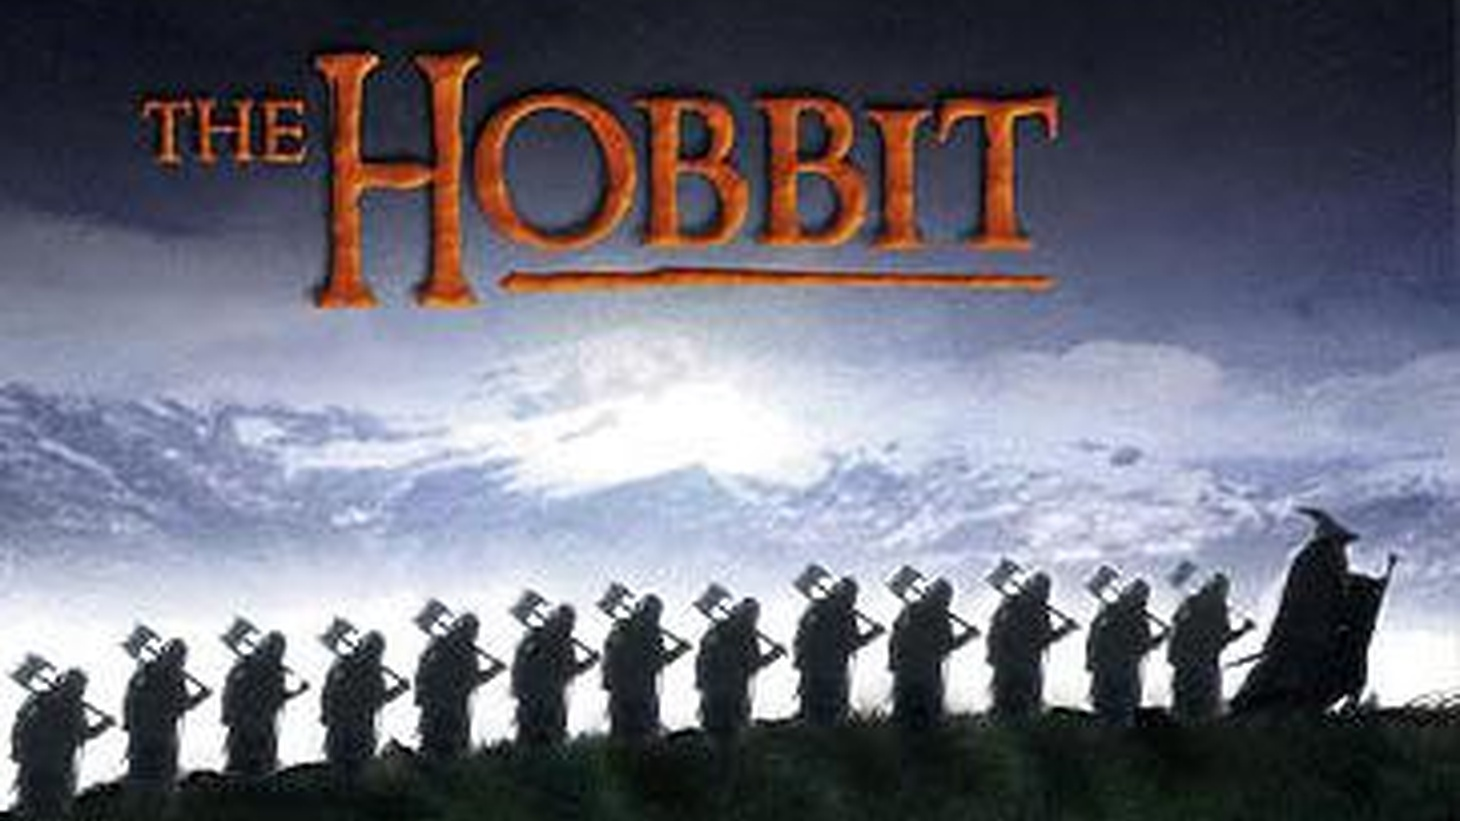 The Hobbit movies have suffered a cursed road to the screen marked by studio financing problems, the loss of director Guillermo del Toro and a fire at a New Zealand studio. But nothing generated so much public anger and government attention as when the actors tried to unionize and Warner Bros threatened to move the $500 million production out of New Zealand. Jonathan Handel, contributing editor to the Hollywood Reporter, breaks down the high drama and big dollars involved. Plus, young filmmaker Lena Dunham, who wowed people with her little personal movie, Tiny Furniture, is the hottest new thing in Hollywood...